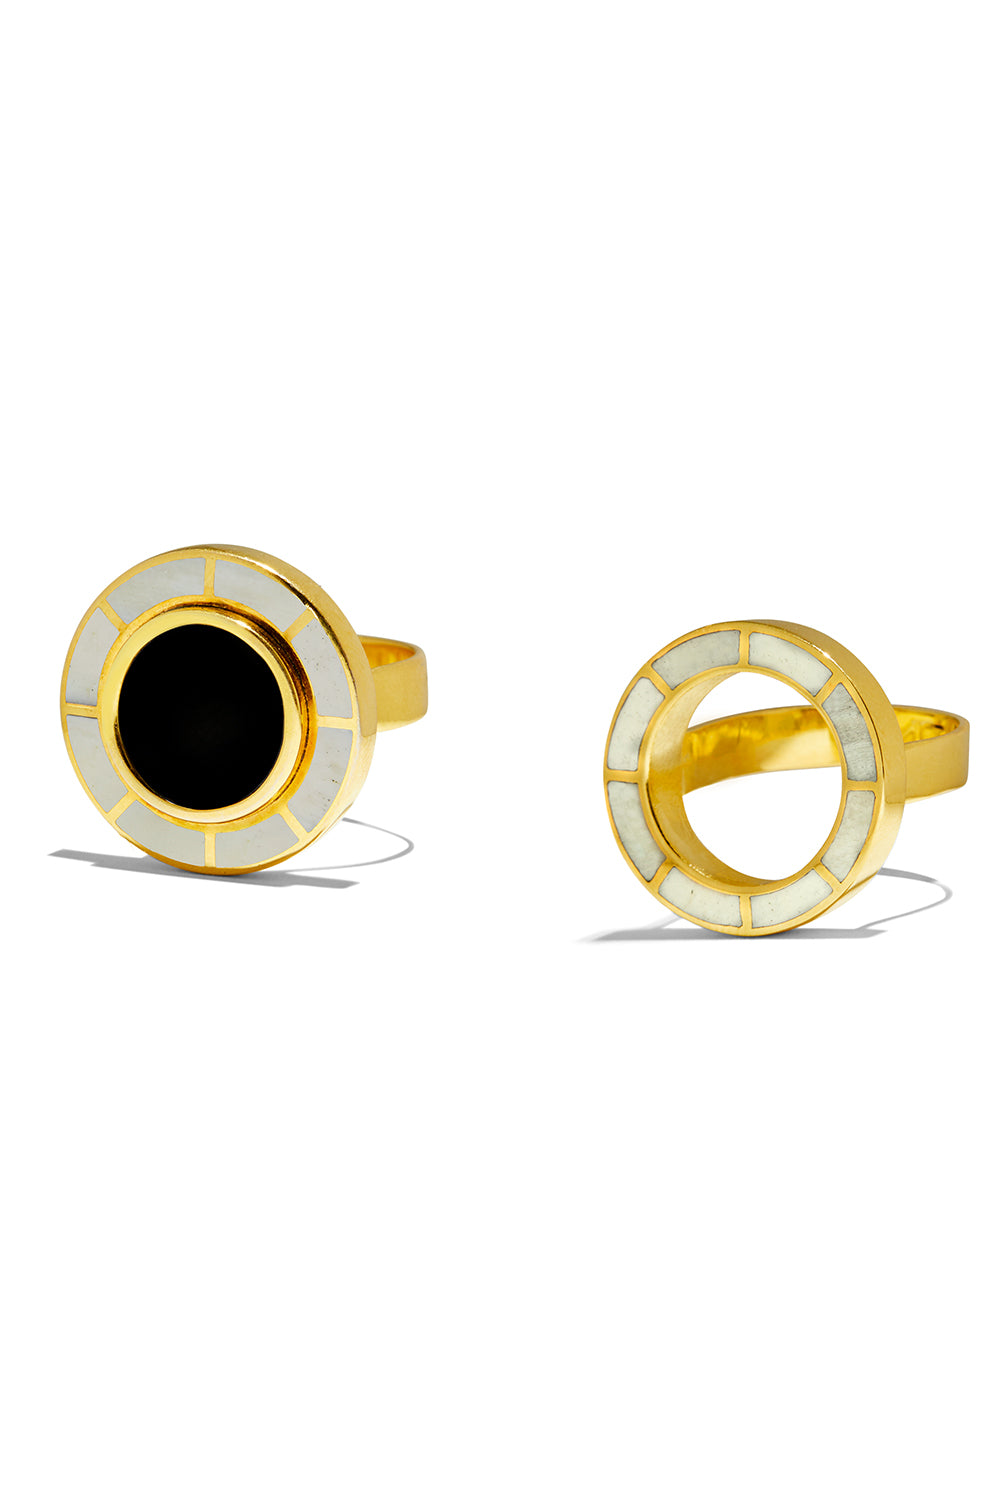 Brujo Half Orbit Rings in Black & White